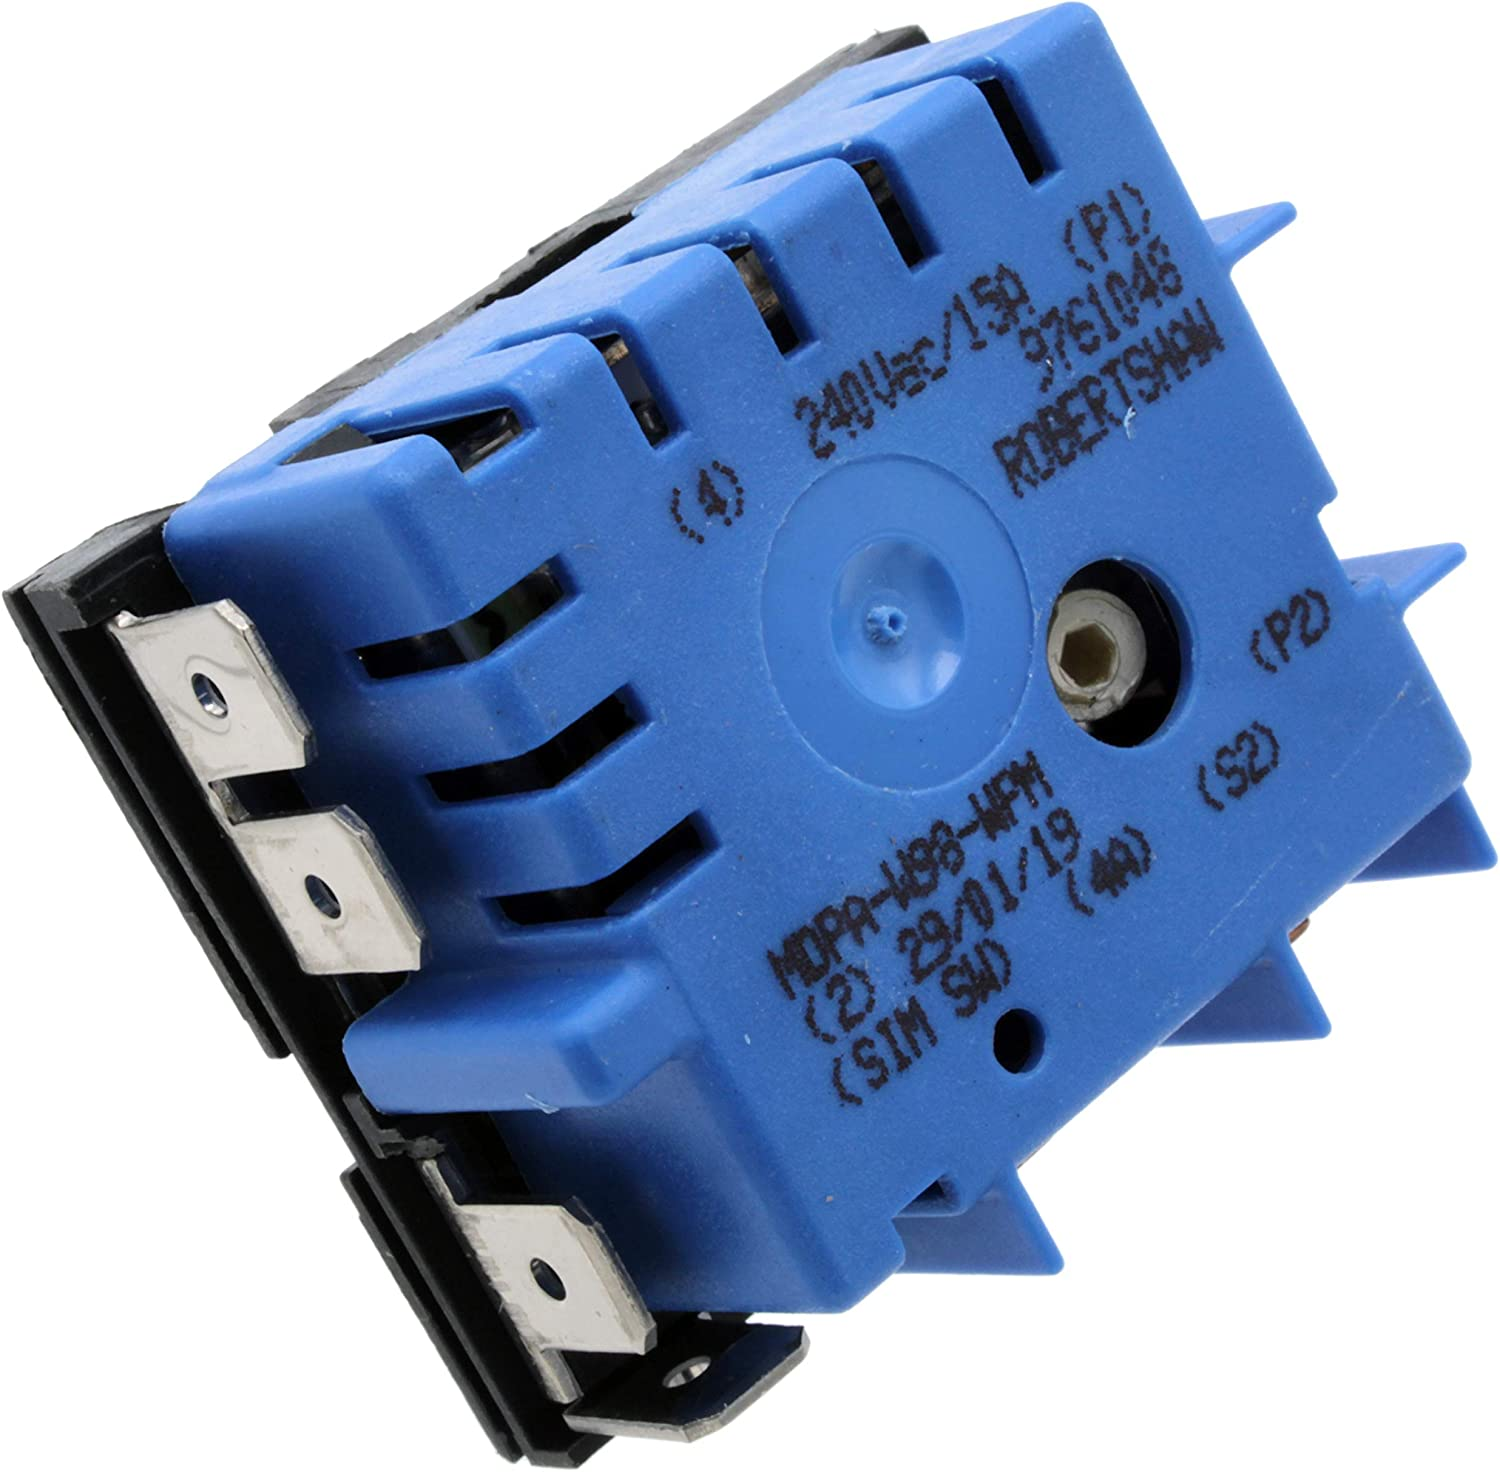 Supplying Demand 9761048 Surface Element Switch Compatible With Whirlpool Fits 8522887, PS11747308